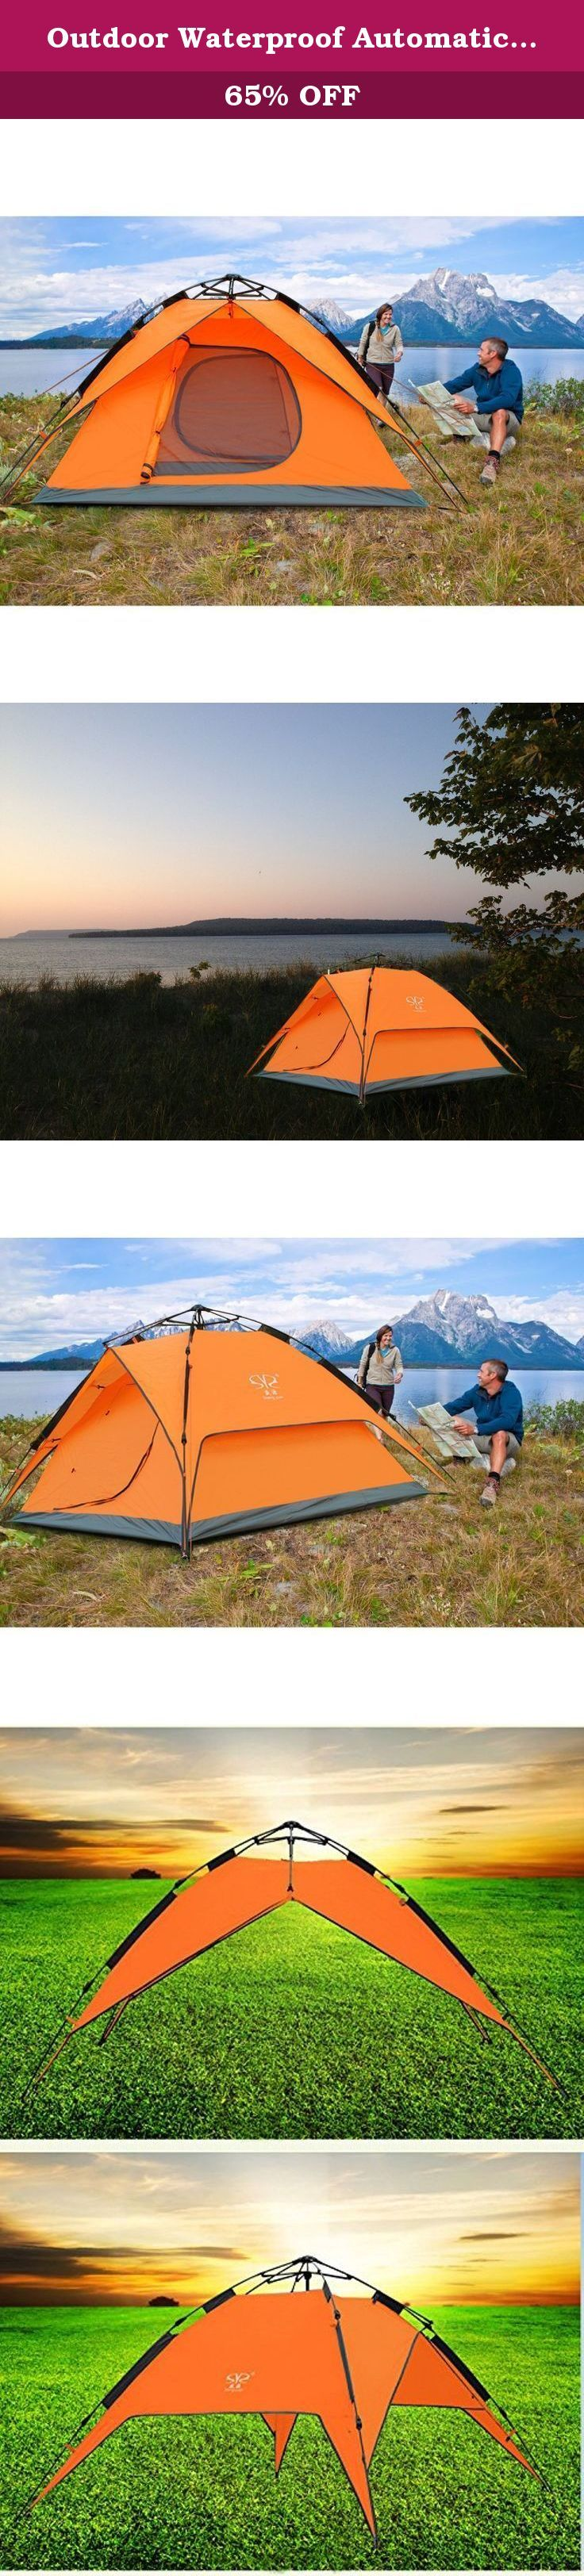 Outdoor Waterproof Automatic 3-4-Person Double Layer Camping Family Tents SY (orange). Order from us you will enjoy Top Grade after-sales service. 2 Years Quality Warranty. Specification: Material:210T polyester rainfly Sheet Material:150D oxford Overall dimensions : 215 x 200 x 145cm/84.6 x 78.7 x 57inch Compact dimensions : 15 x 15 x 75cm/5.9 x 5.9 x 29.5inch Feature: 1 interior mesh pocket for keeping your gear organized 1 hook on the roof for hanging the lamp or other light stuff...